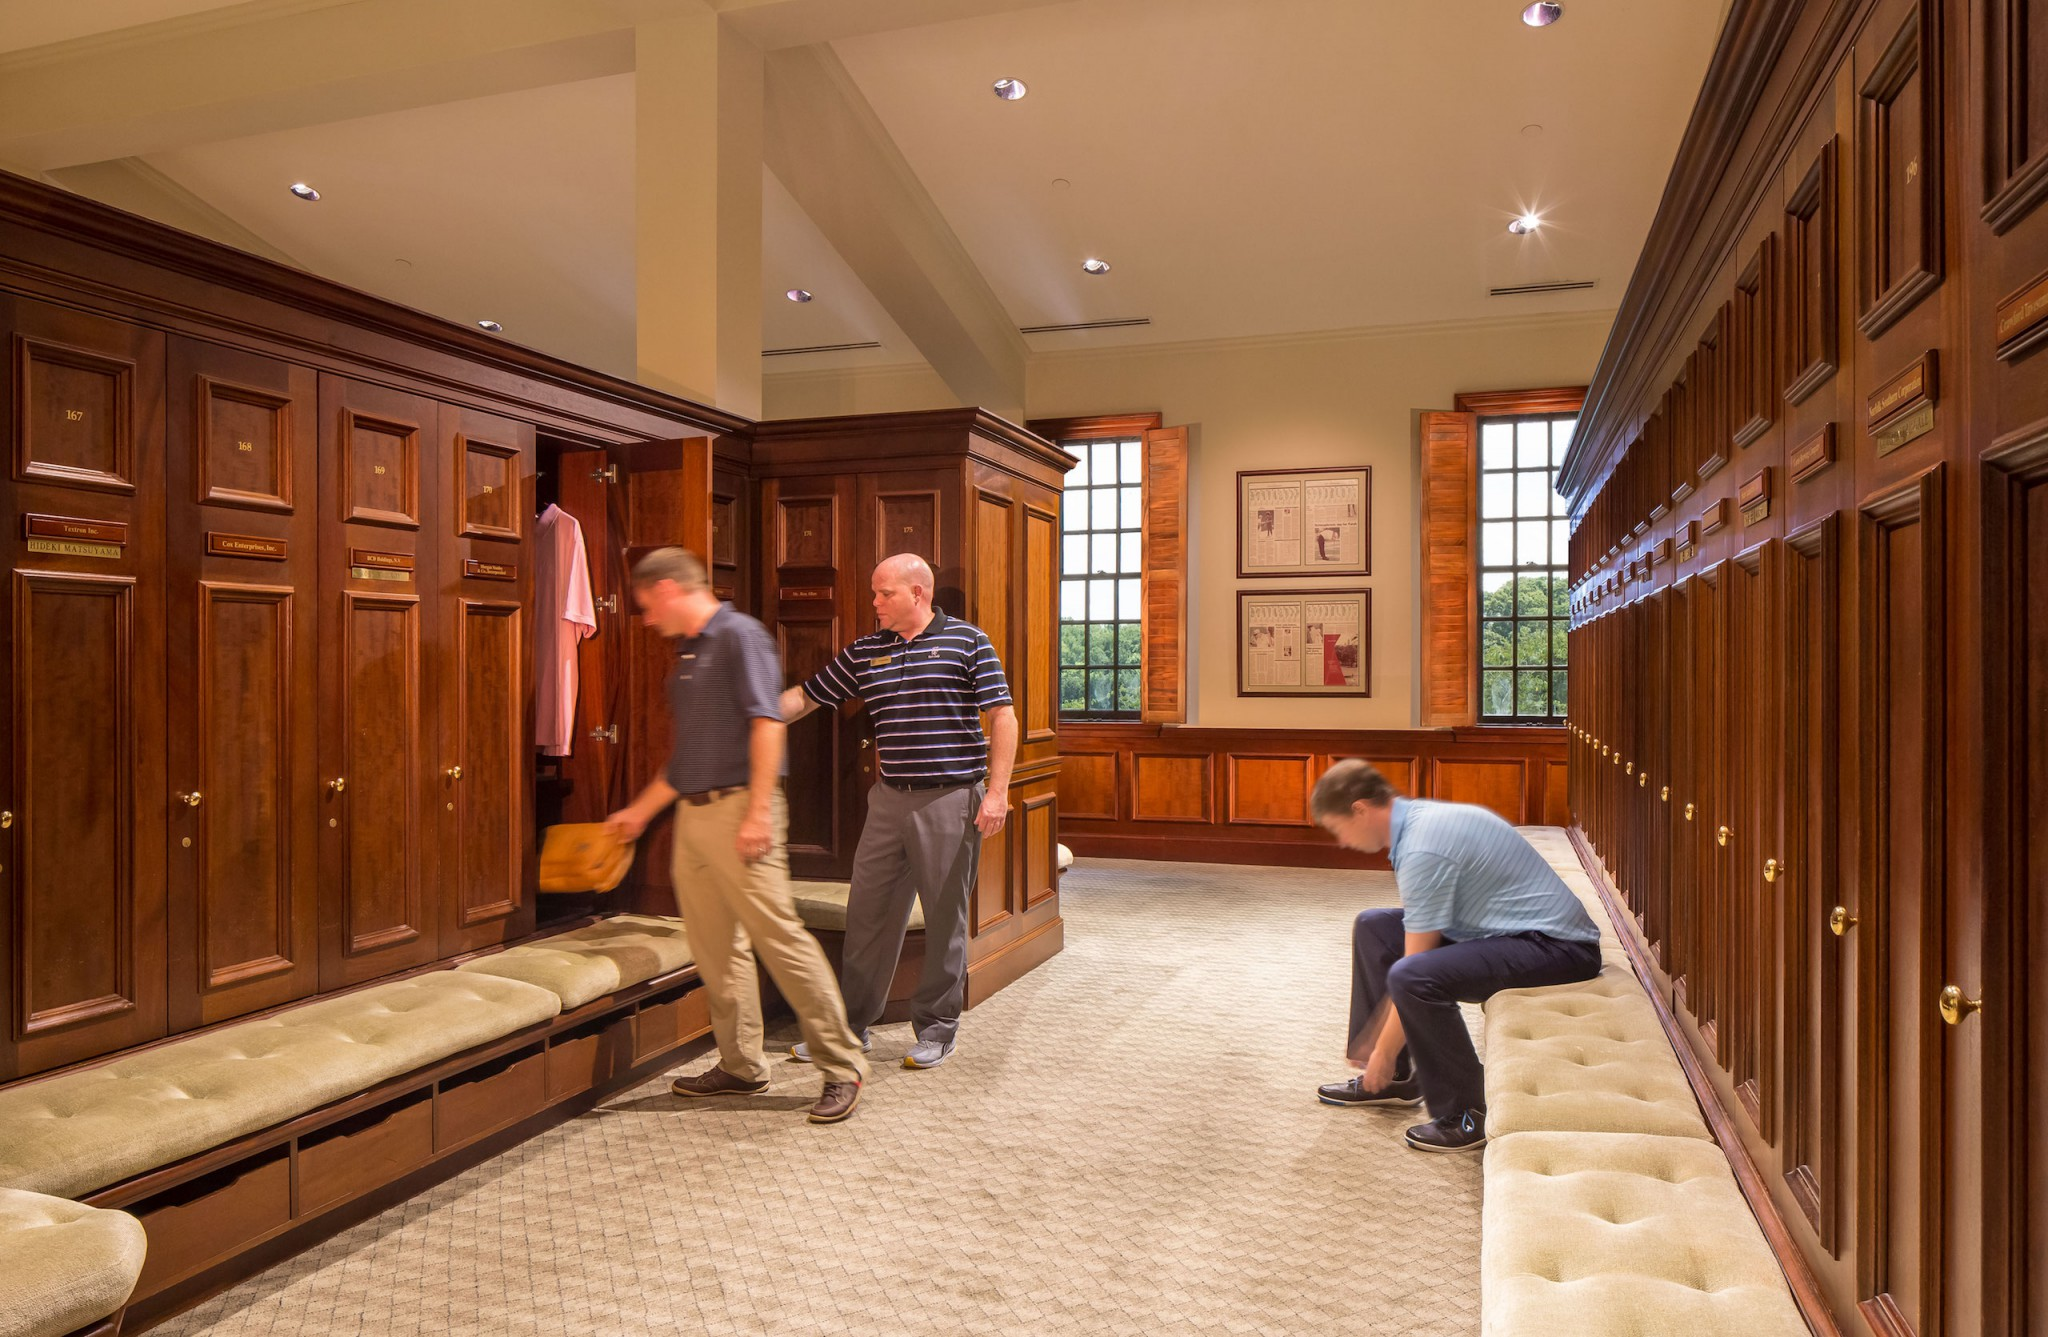 Members home east lake golf club for Image of a room